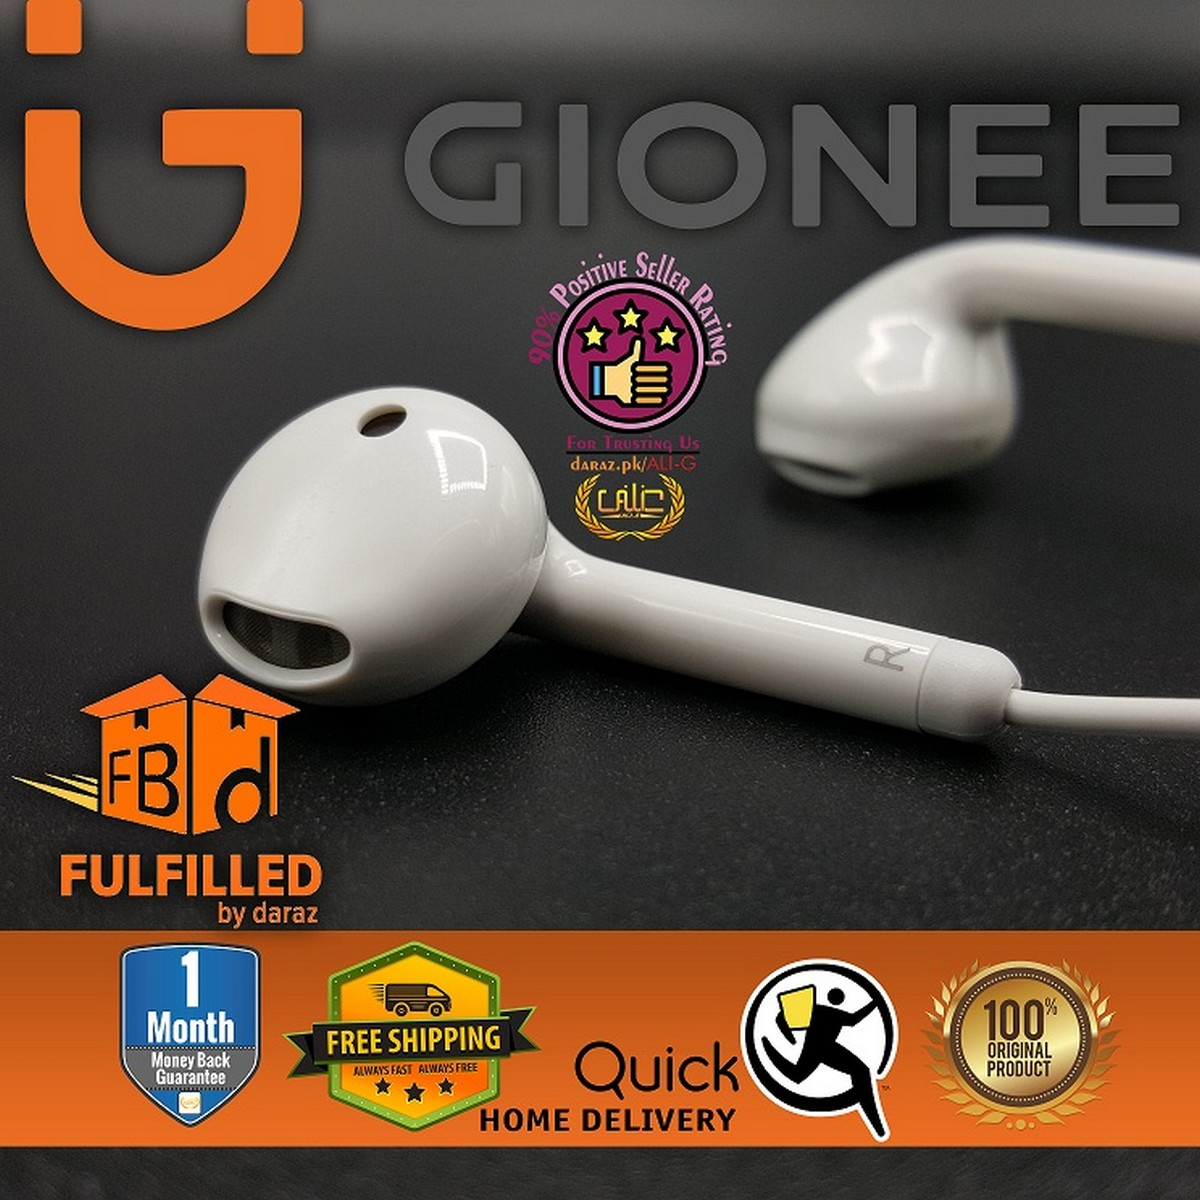 Gionee Earphone Mobile Handsfree for Gaming Music PUBG with Mic Handfree for Girls and Boys - White - 100% Original